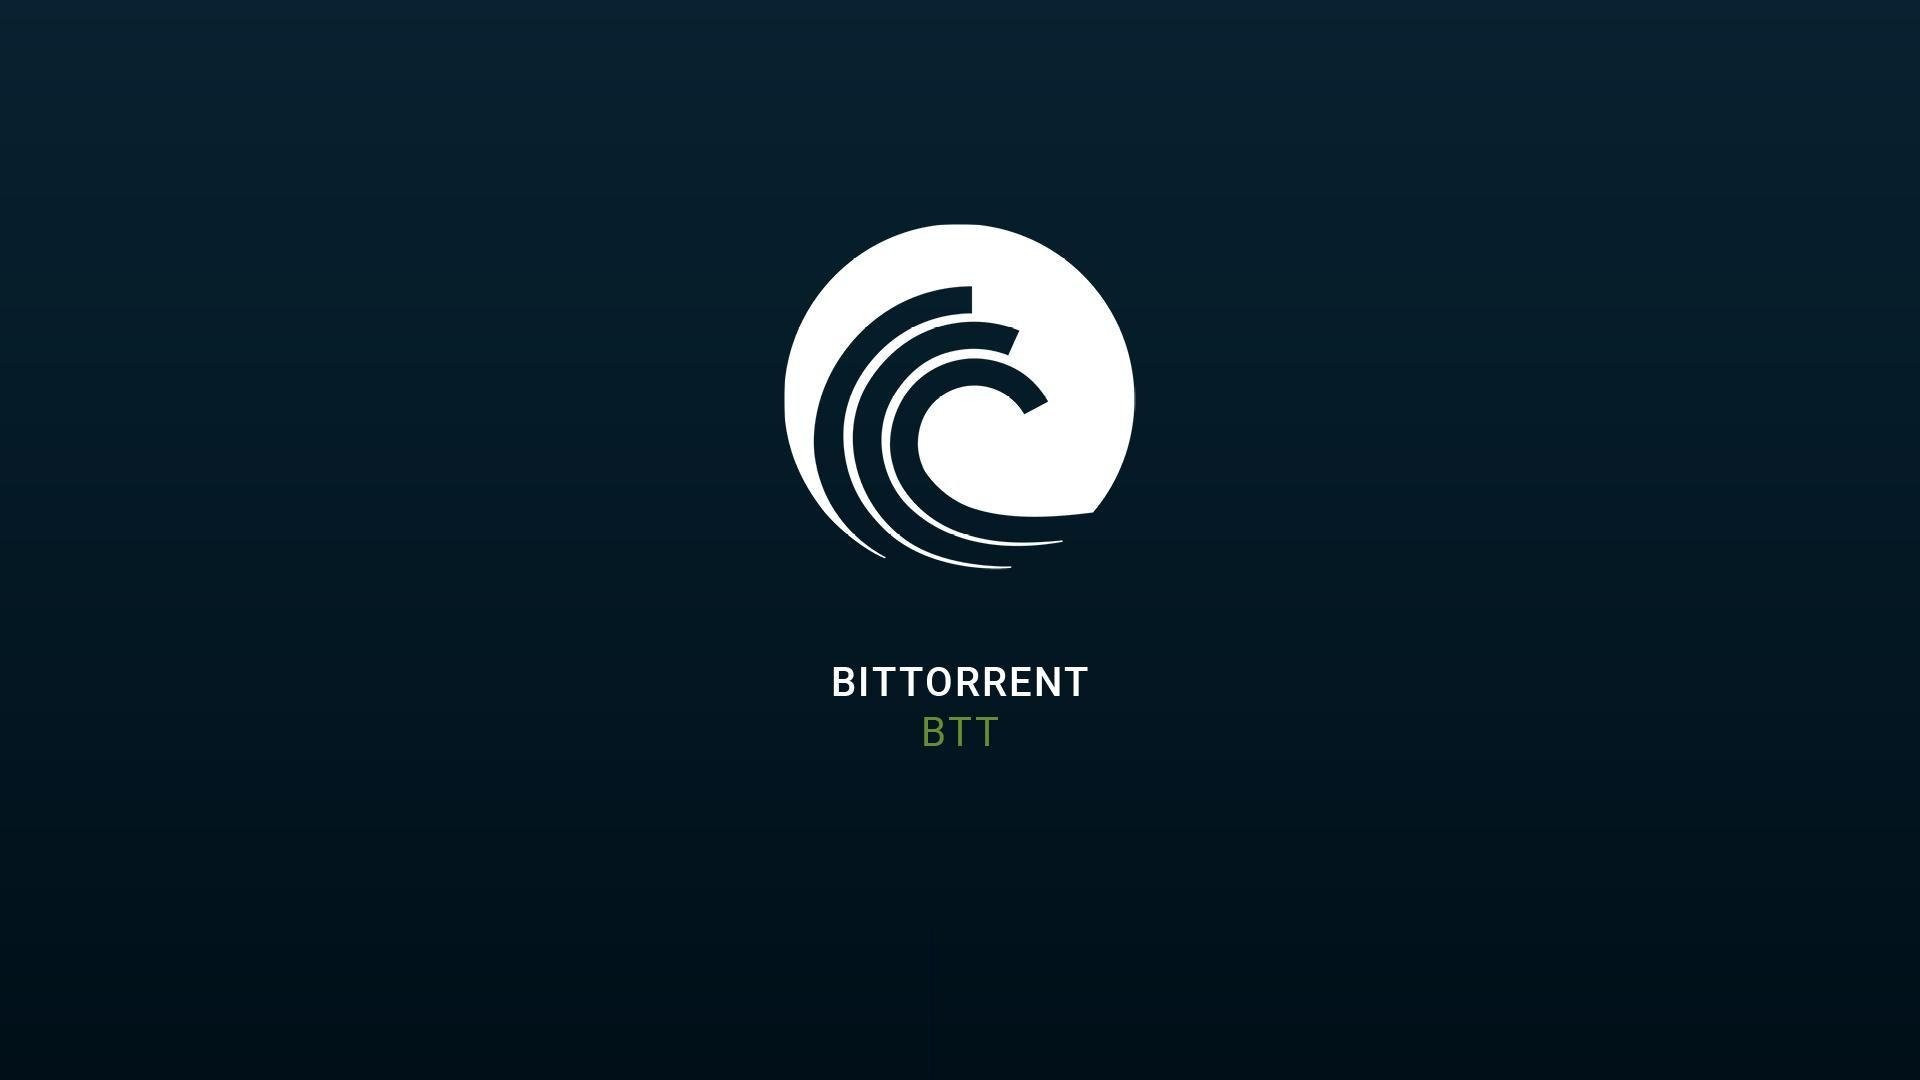 investment better than cryptocurrency